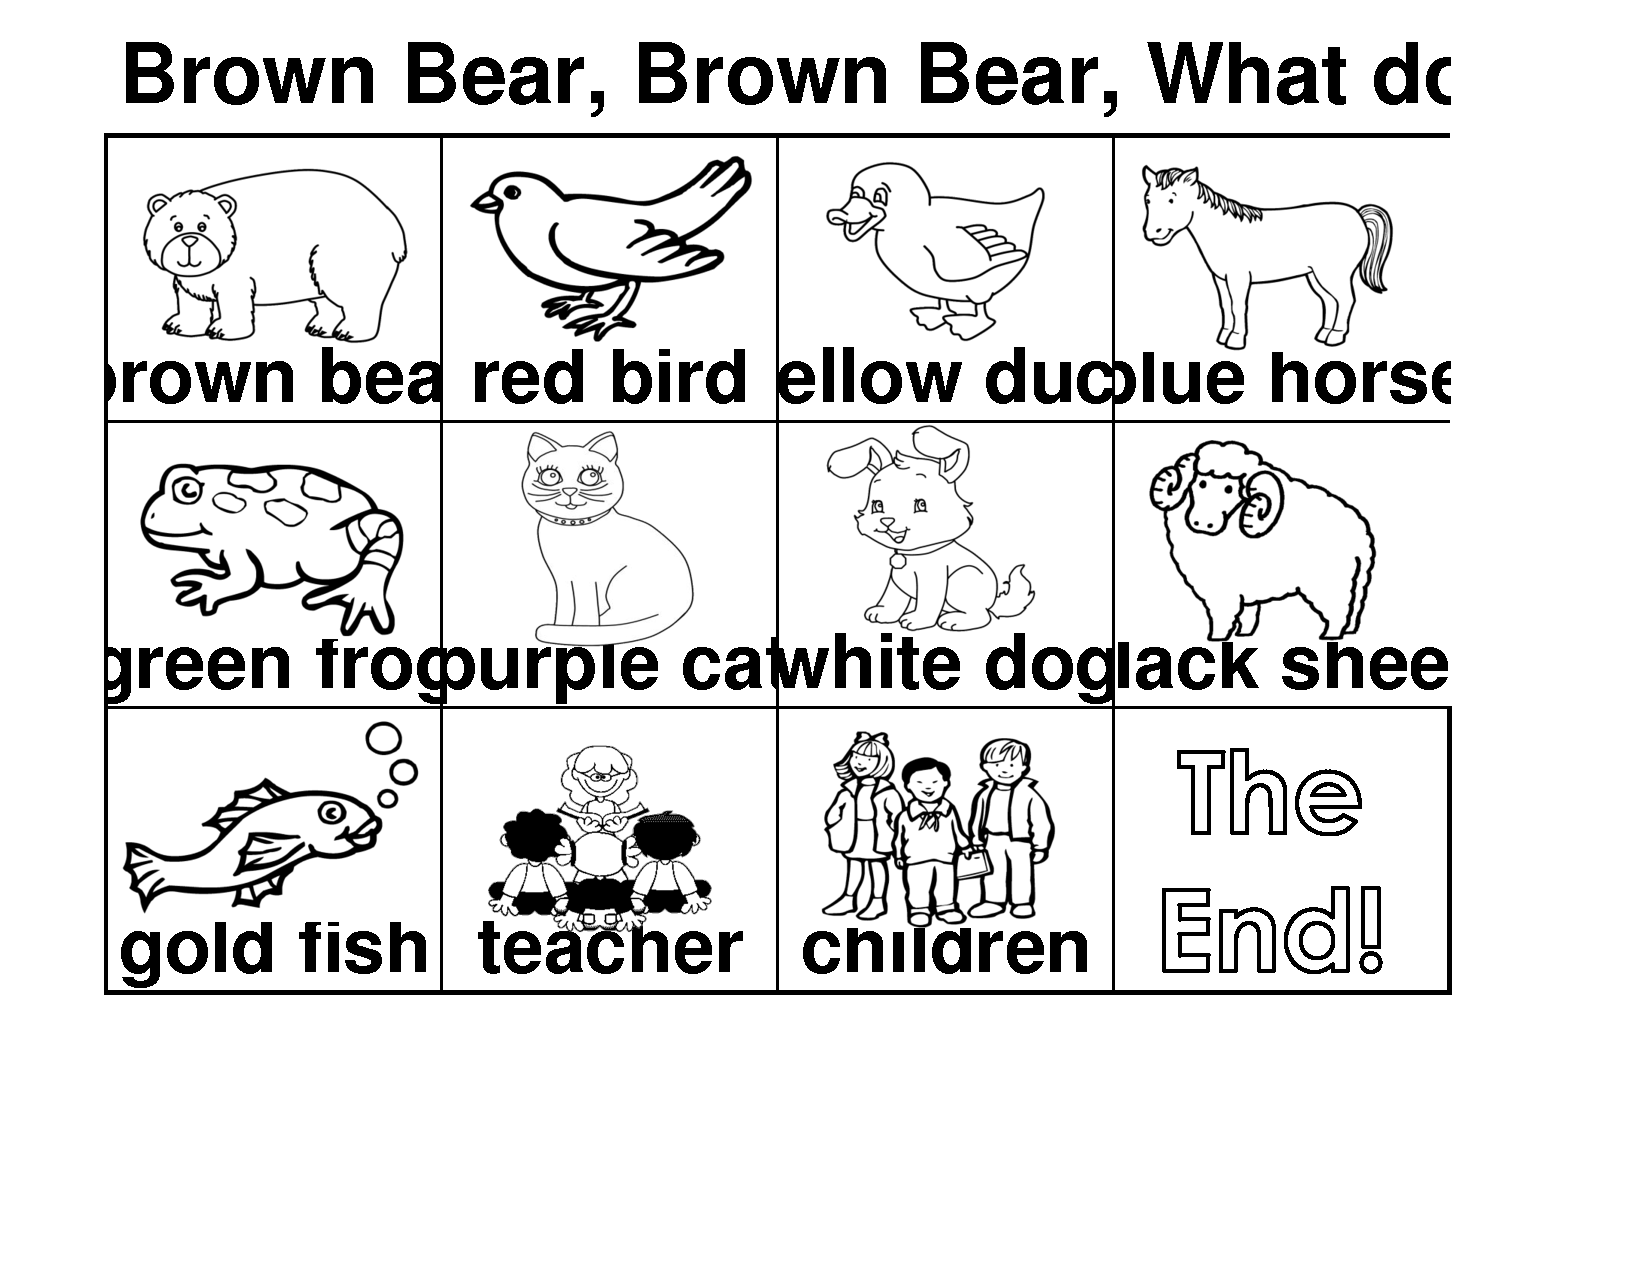 brown bear what do you see coloring pages brown bear brown bear what do you see coloring pages do see pages bear coloring what brown you